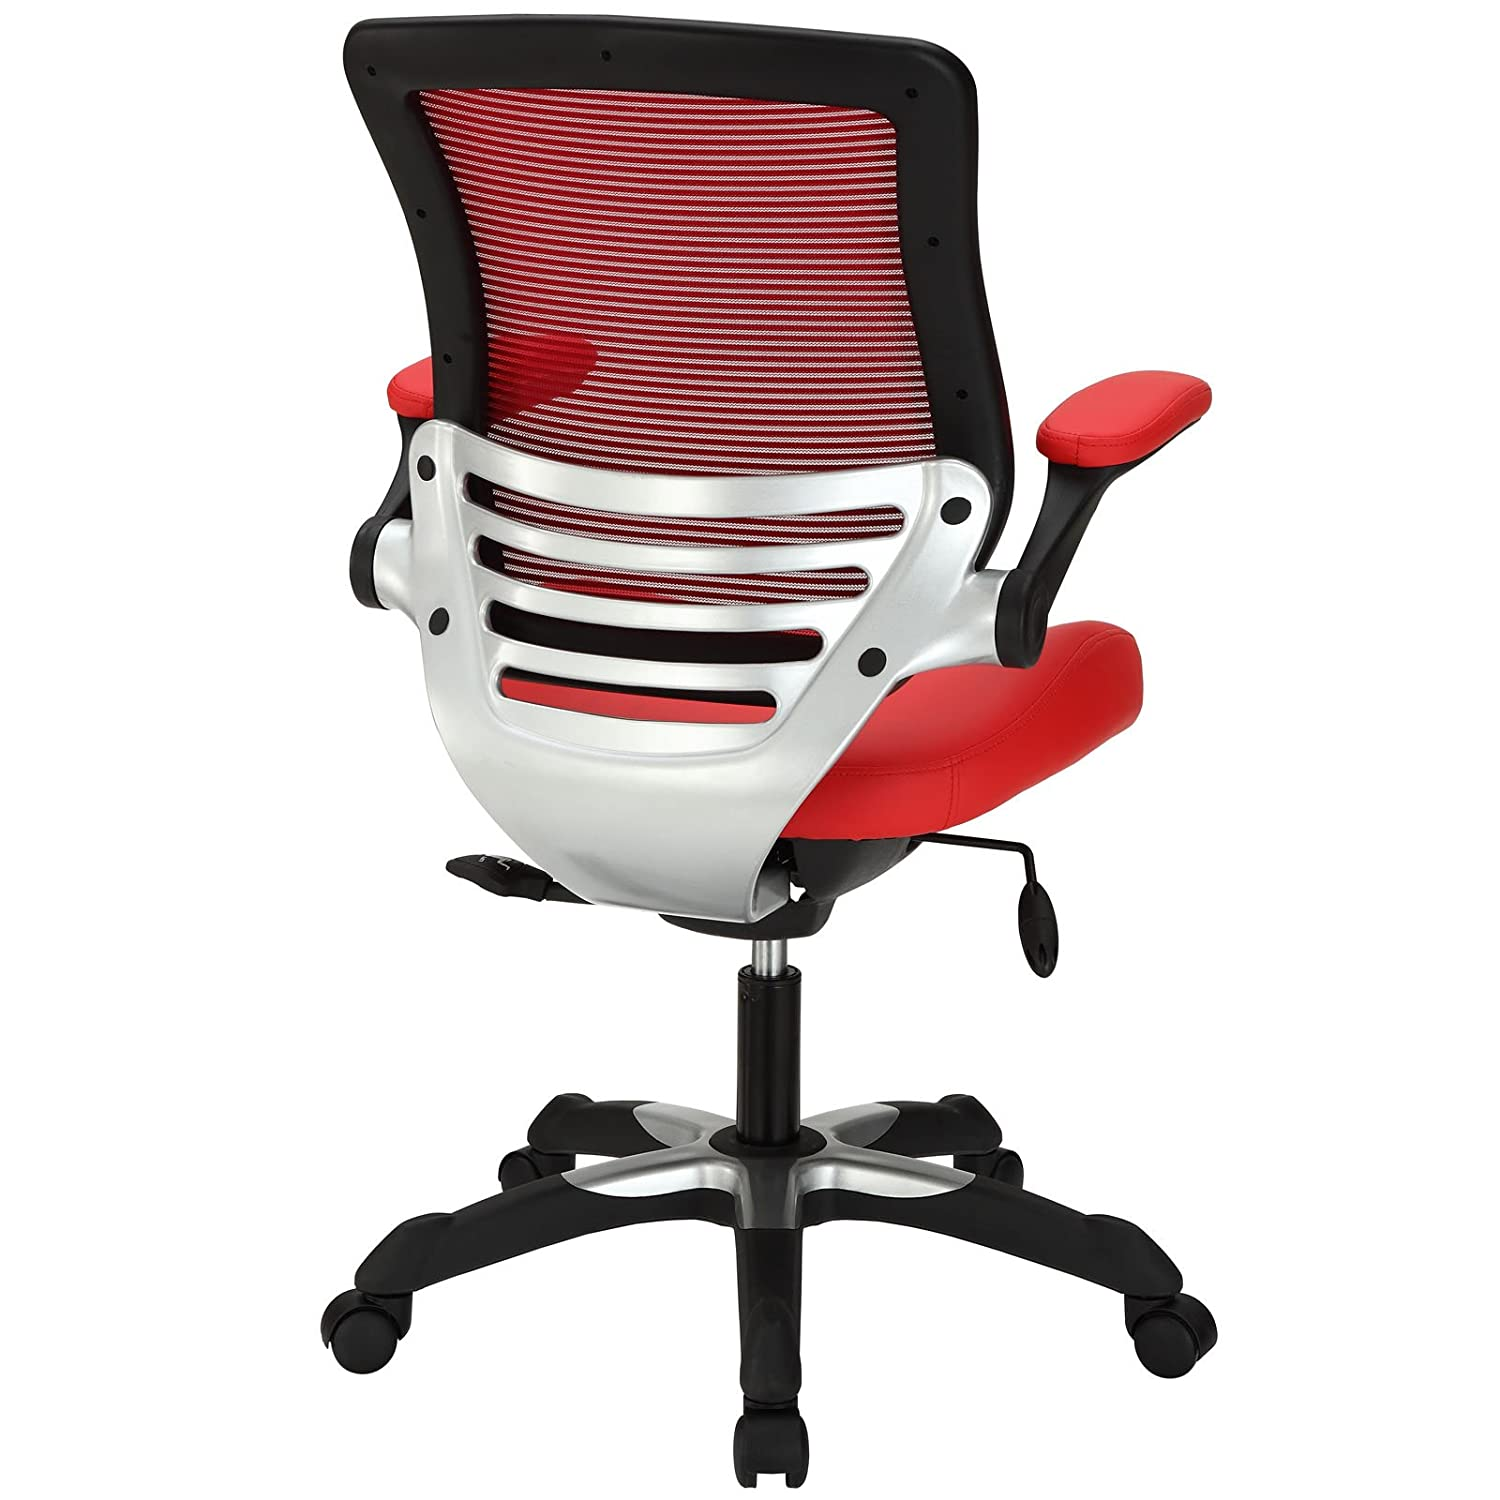 edge office chair with mesh back and black leatherette seat. amazon.com: modway edge mesh back and red vinyl seat office chair with flip-up arms - ergonomic desk computer chair: kitchen \u0026 dining black leatherette